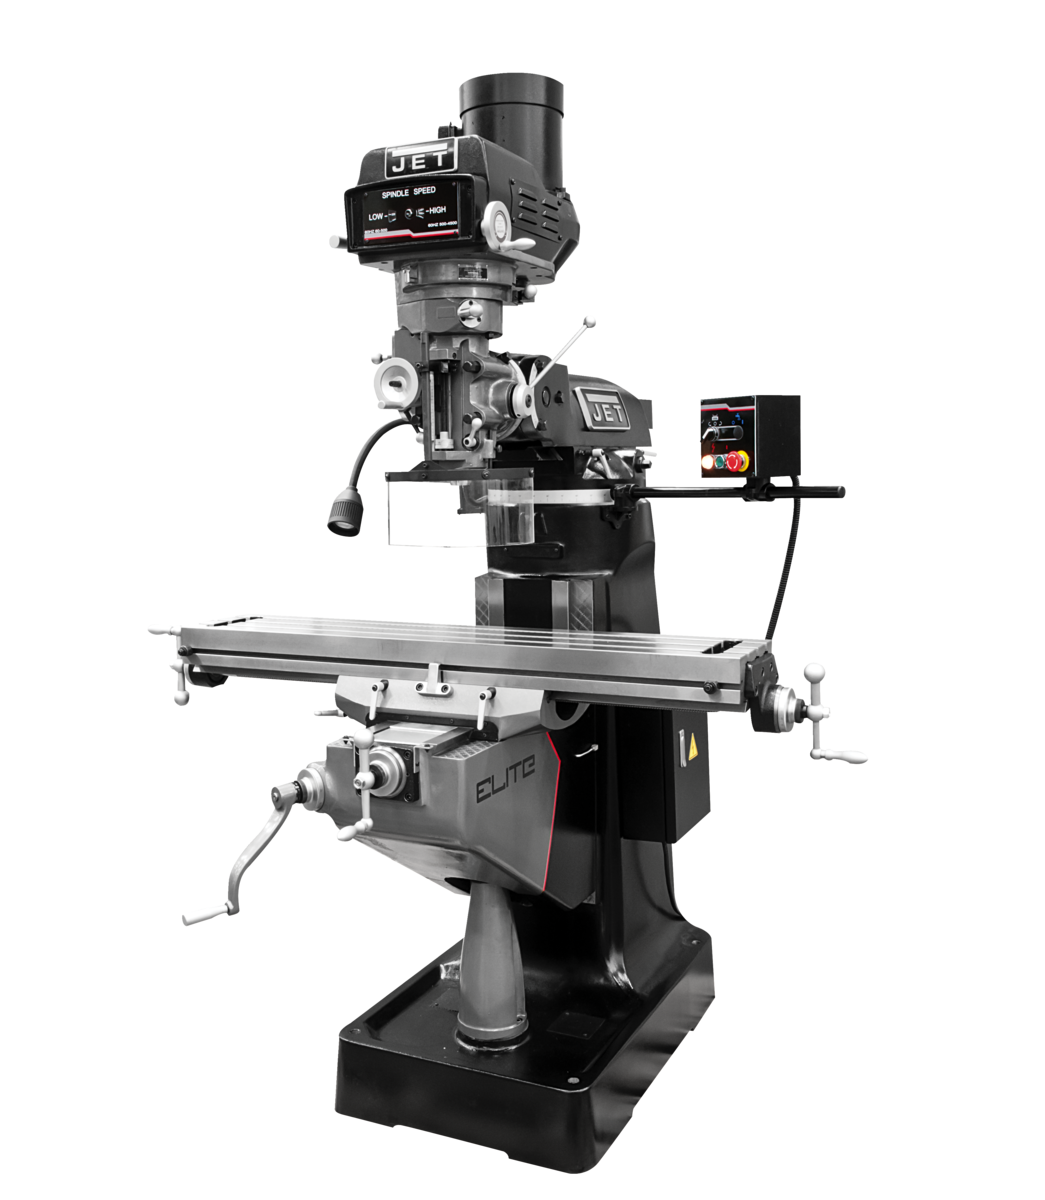 ETM-949 Mill with 3-Axis Newall DP700 (Knee) DRO and X, Y, Z-Axis JET Powerfeeds